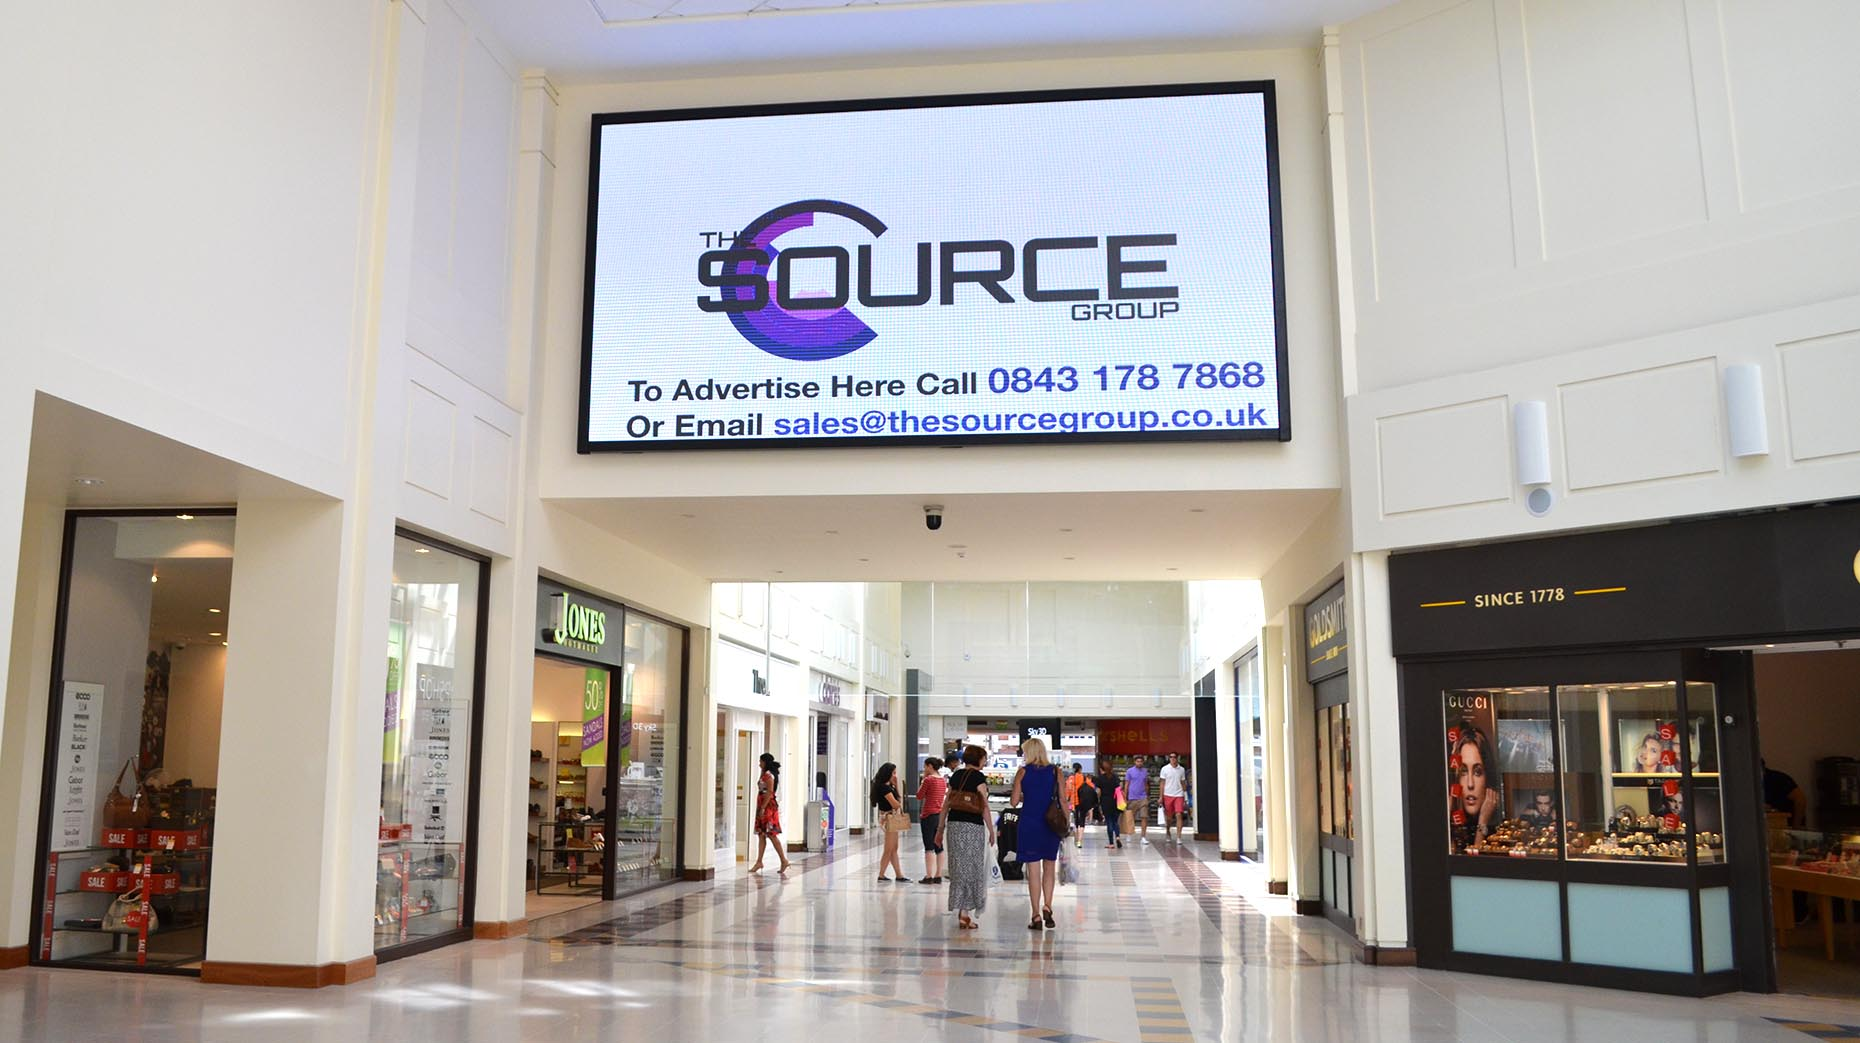 Highest Resolution Shopping Centre Screen In Uk Arrives In